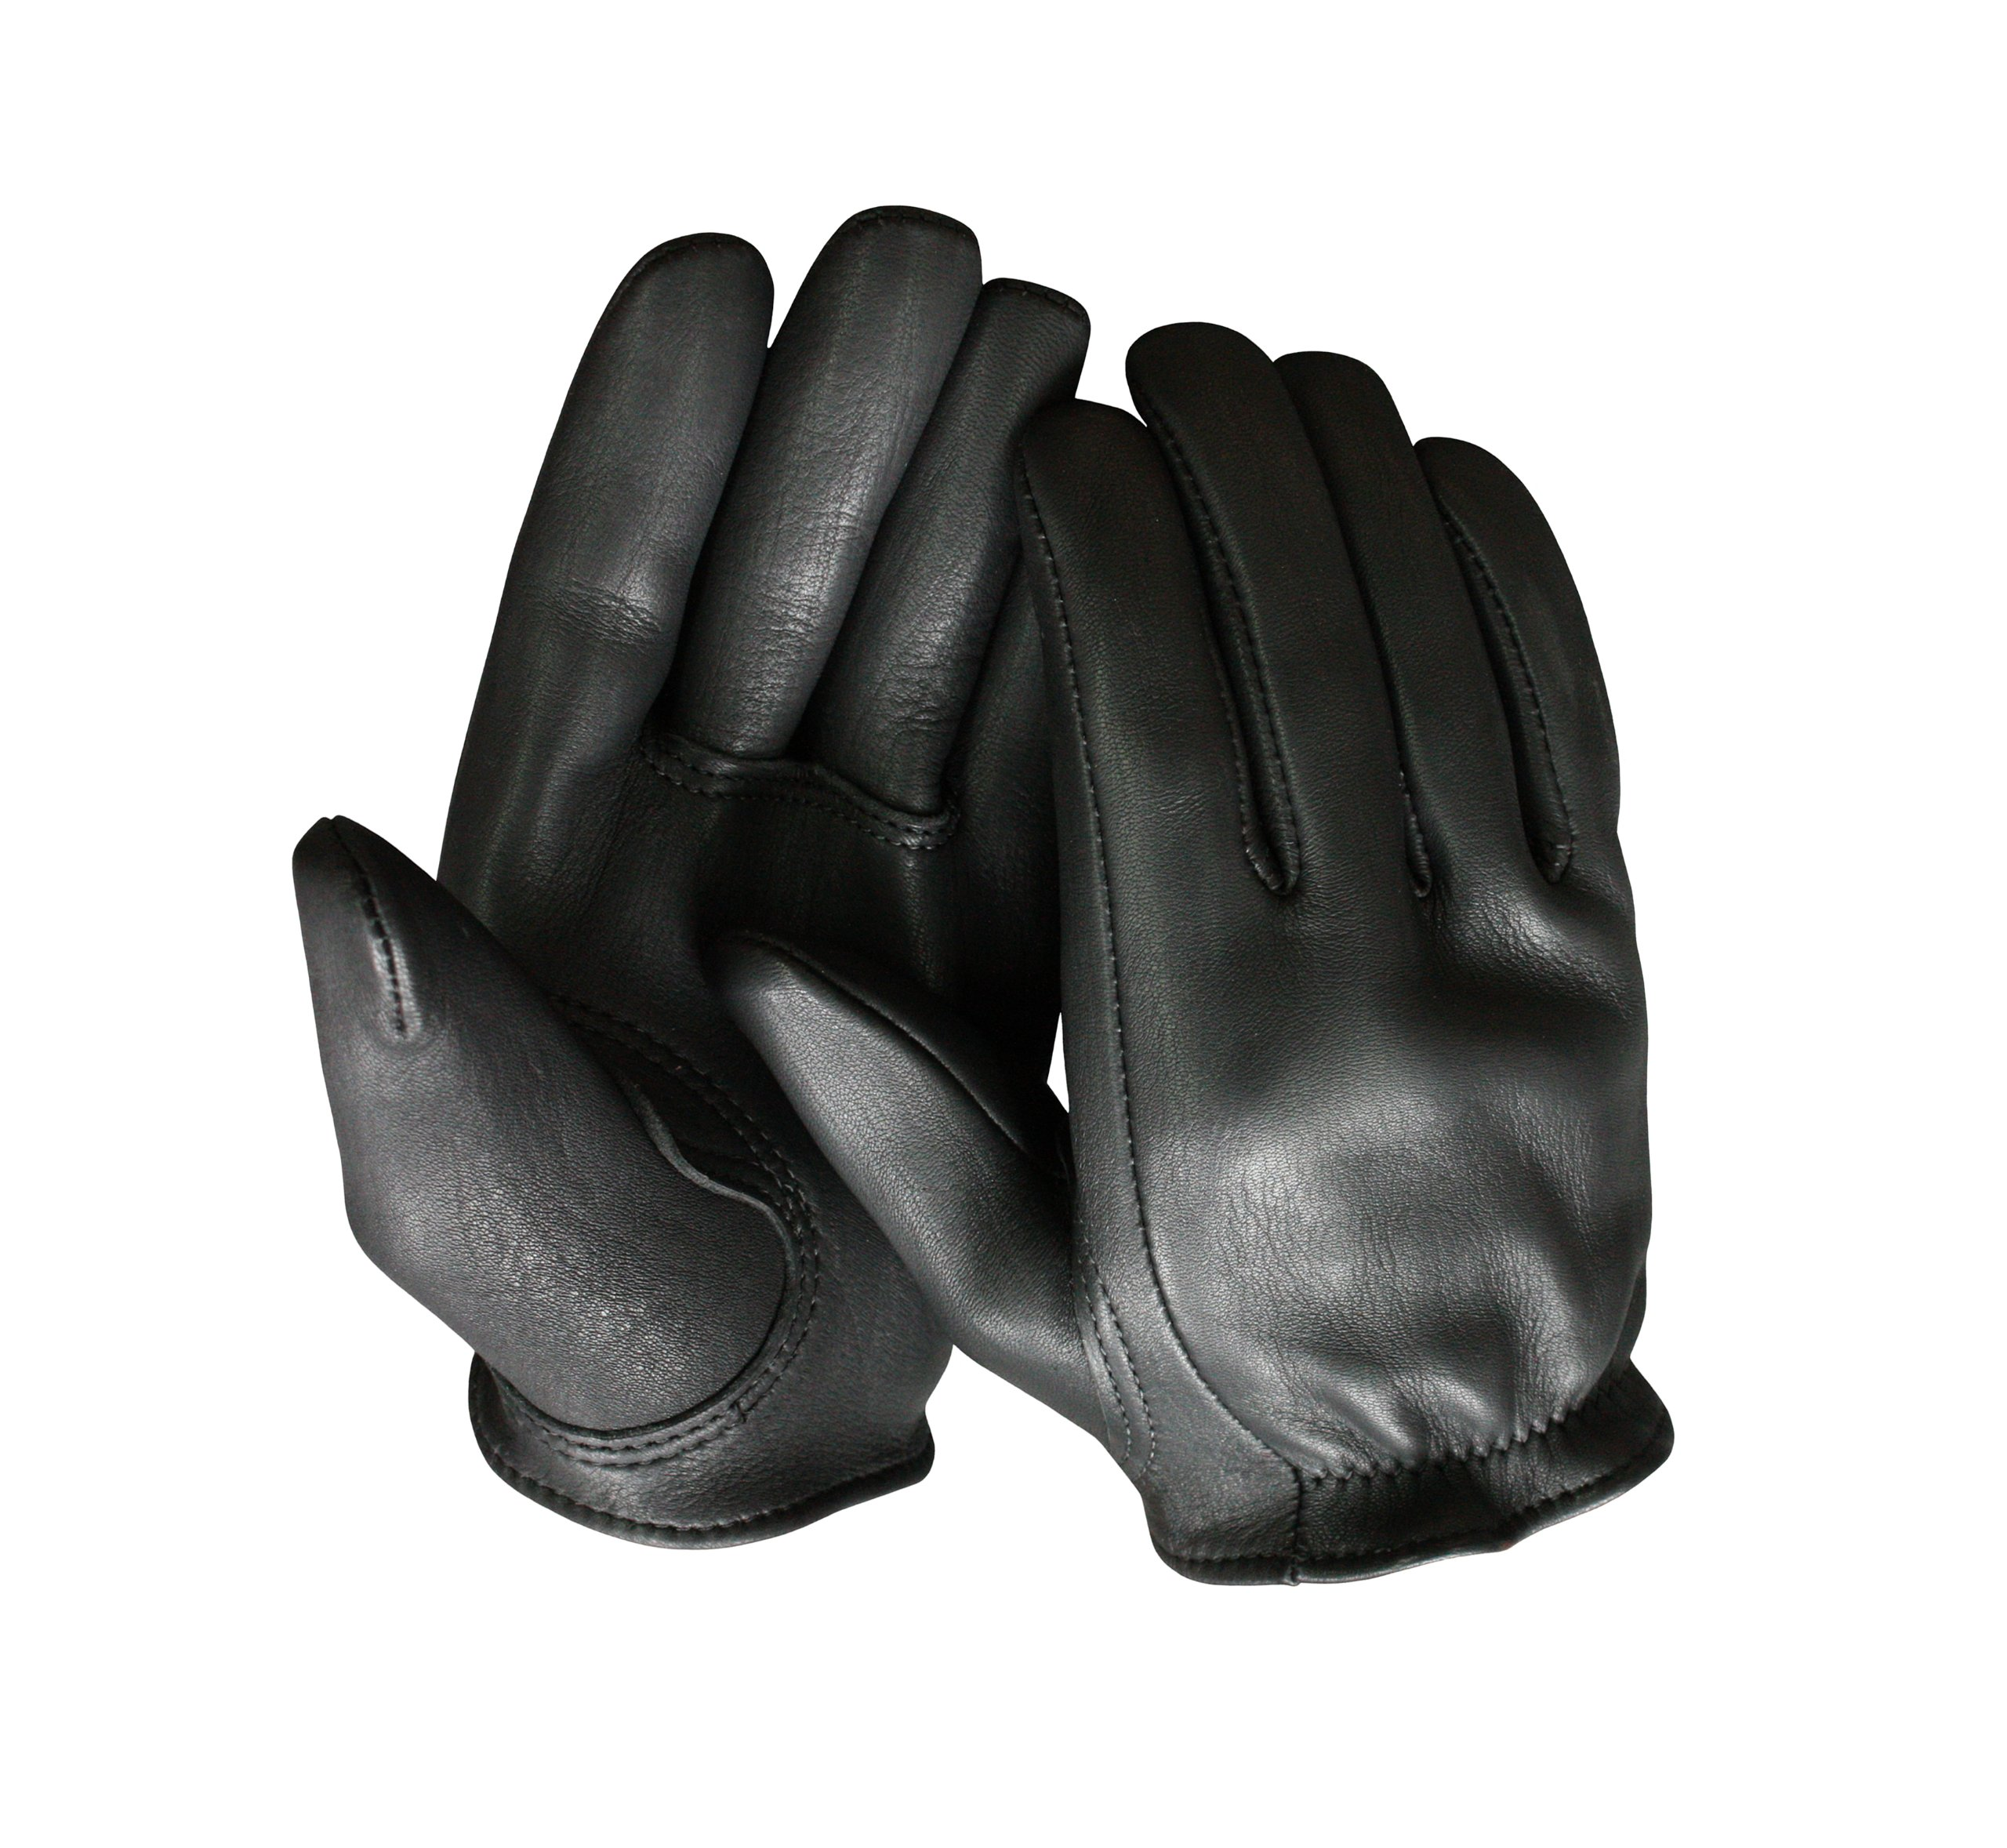 Churchill Classic Short Wrist Deerskin Motorcycle Gloves Made in America Black (Large)